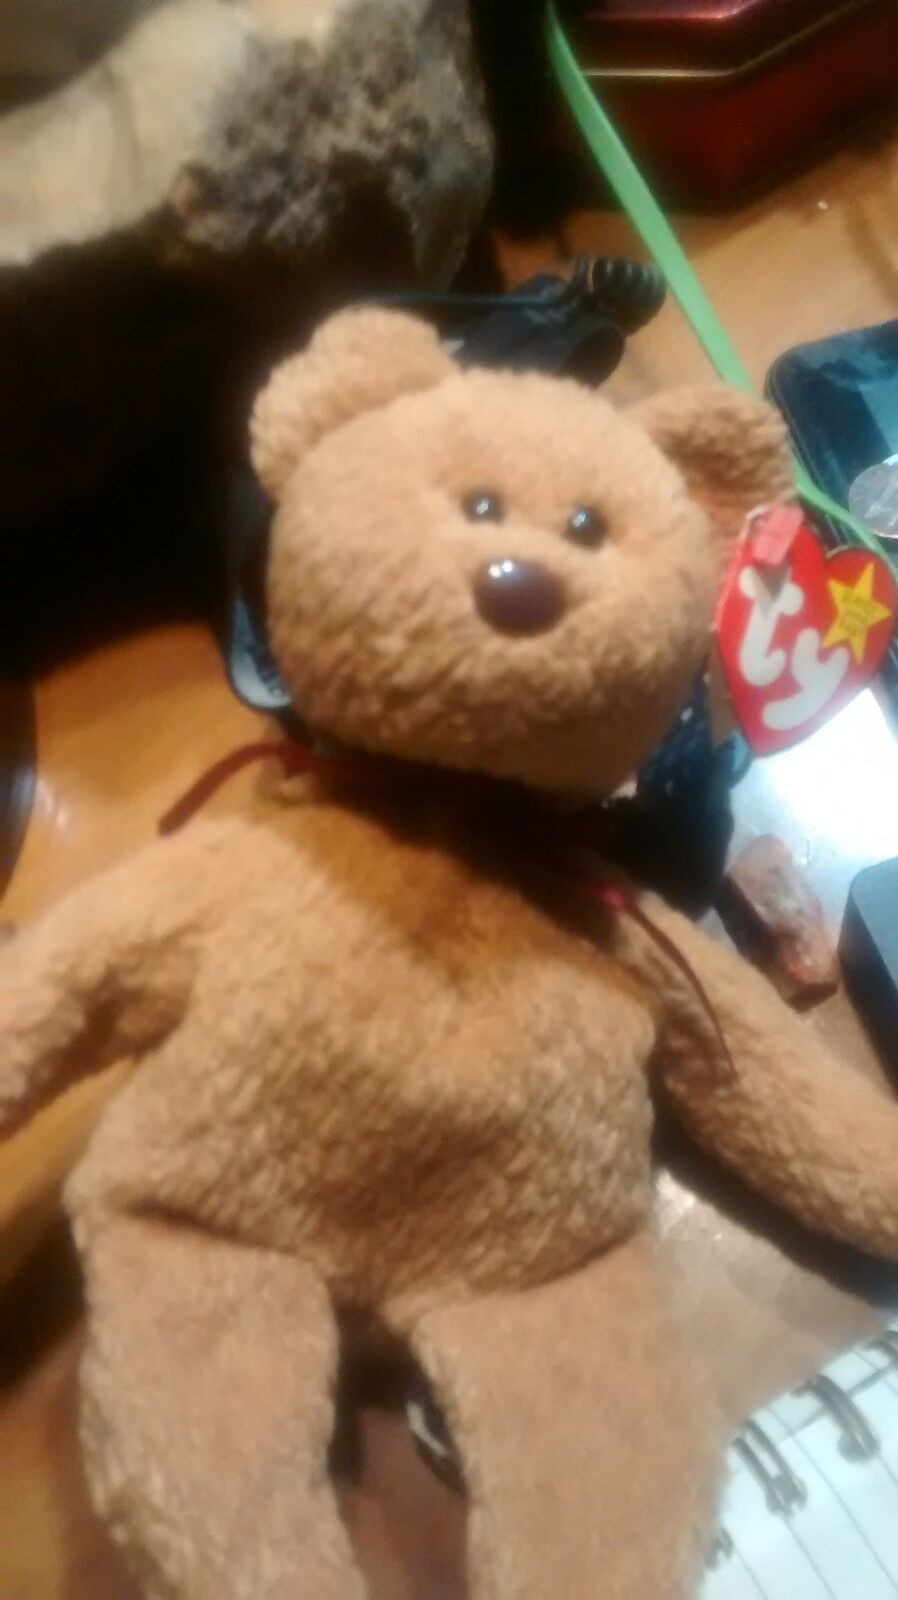 Curly the bear Beanie Baby Baby Baby Very Rare with Swing Tag & Tush Tag Error e05181